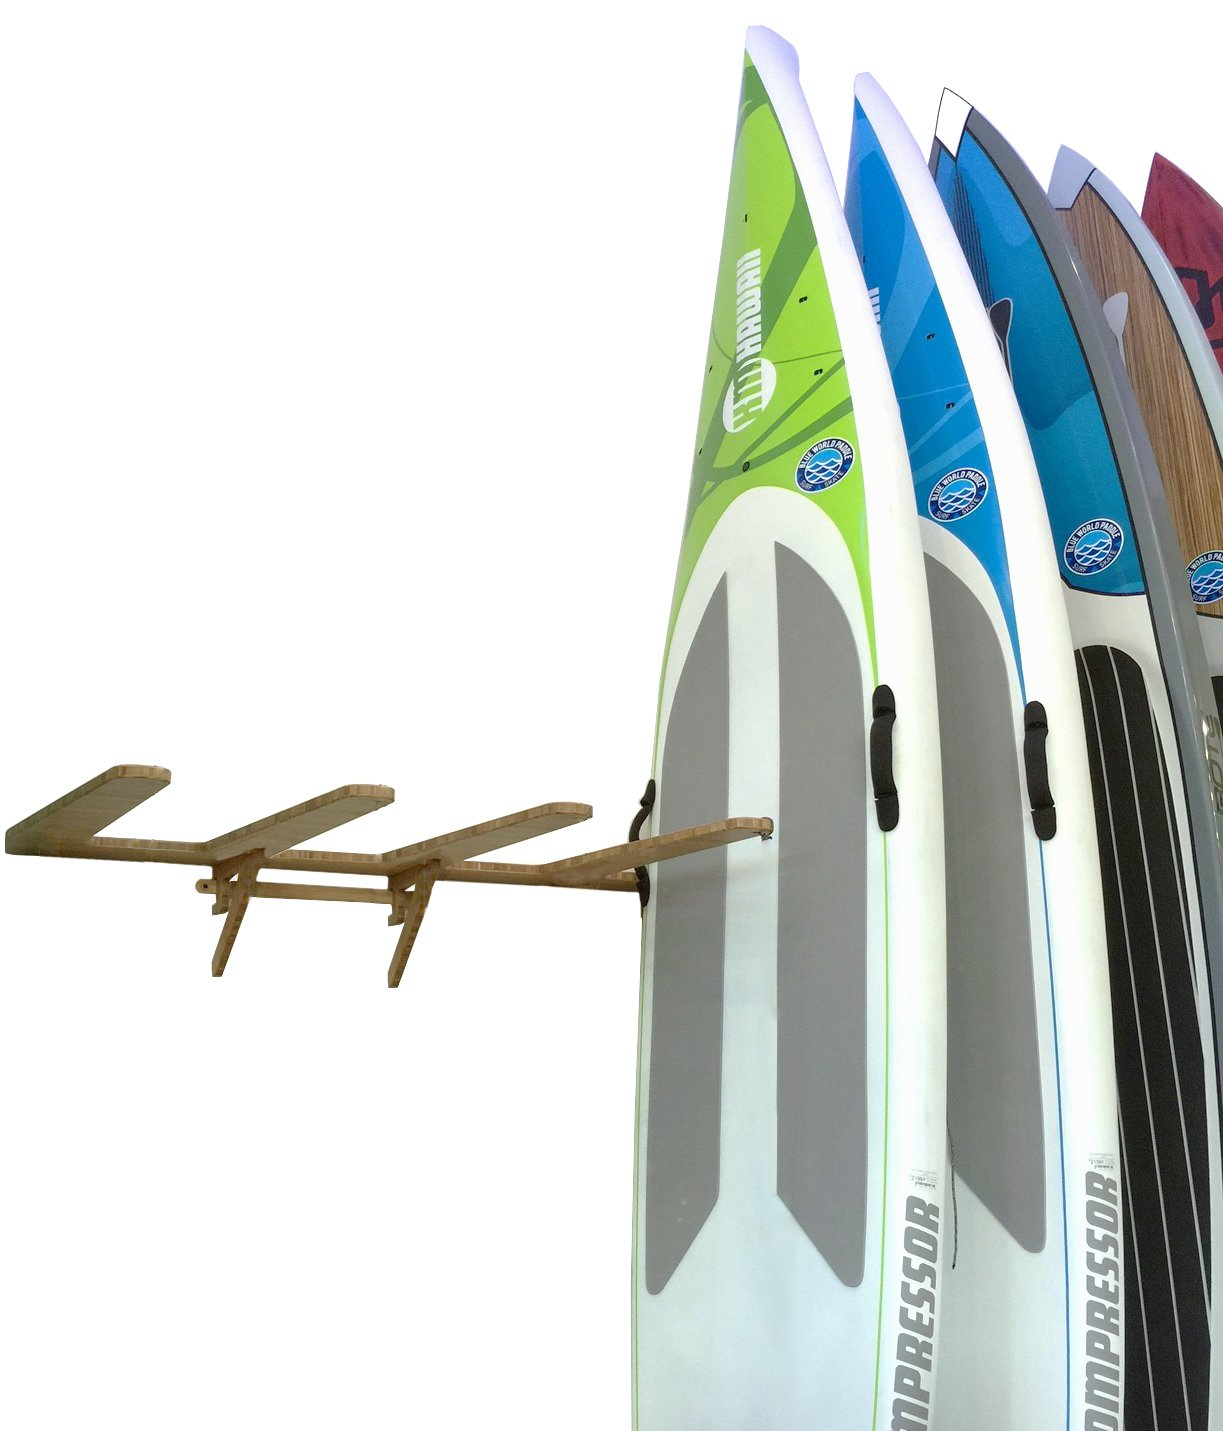 Grassracks Bamboo Vertical Wall-Mounted SUP Rack for 4 Paddleboards or Surfboards by Grassracks